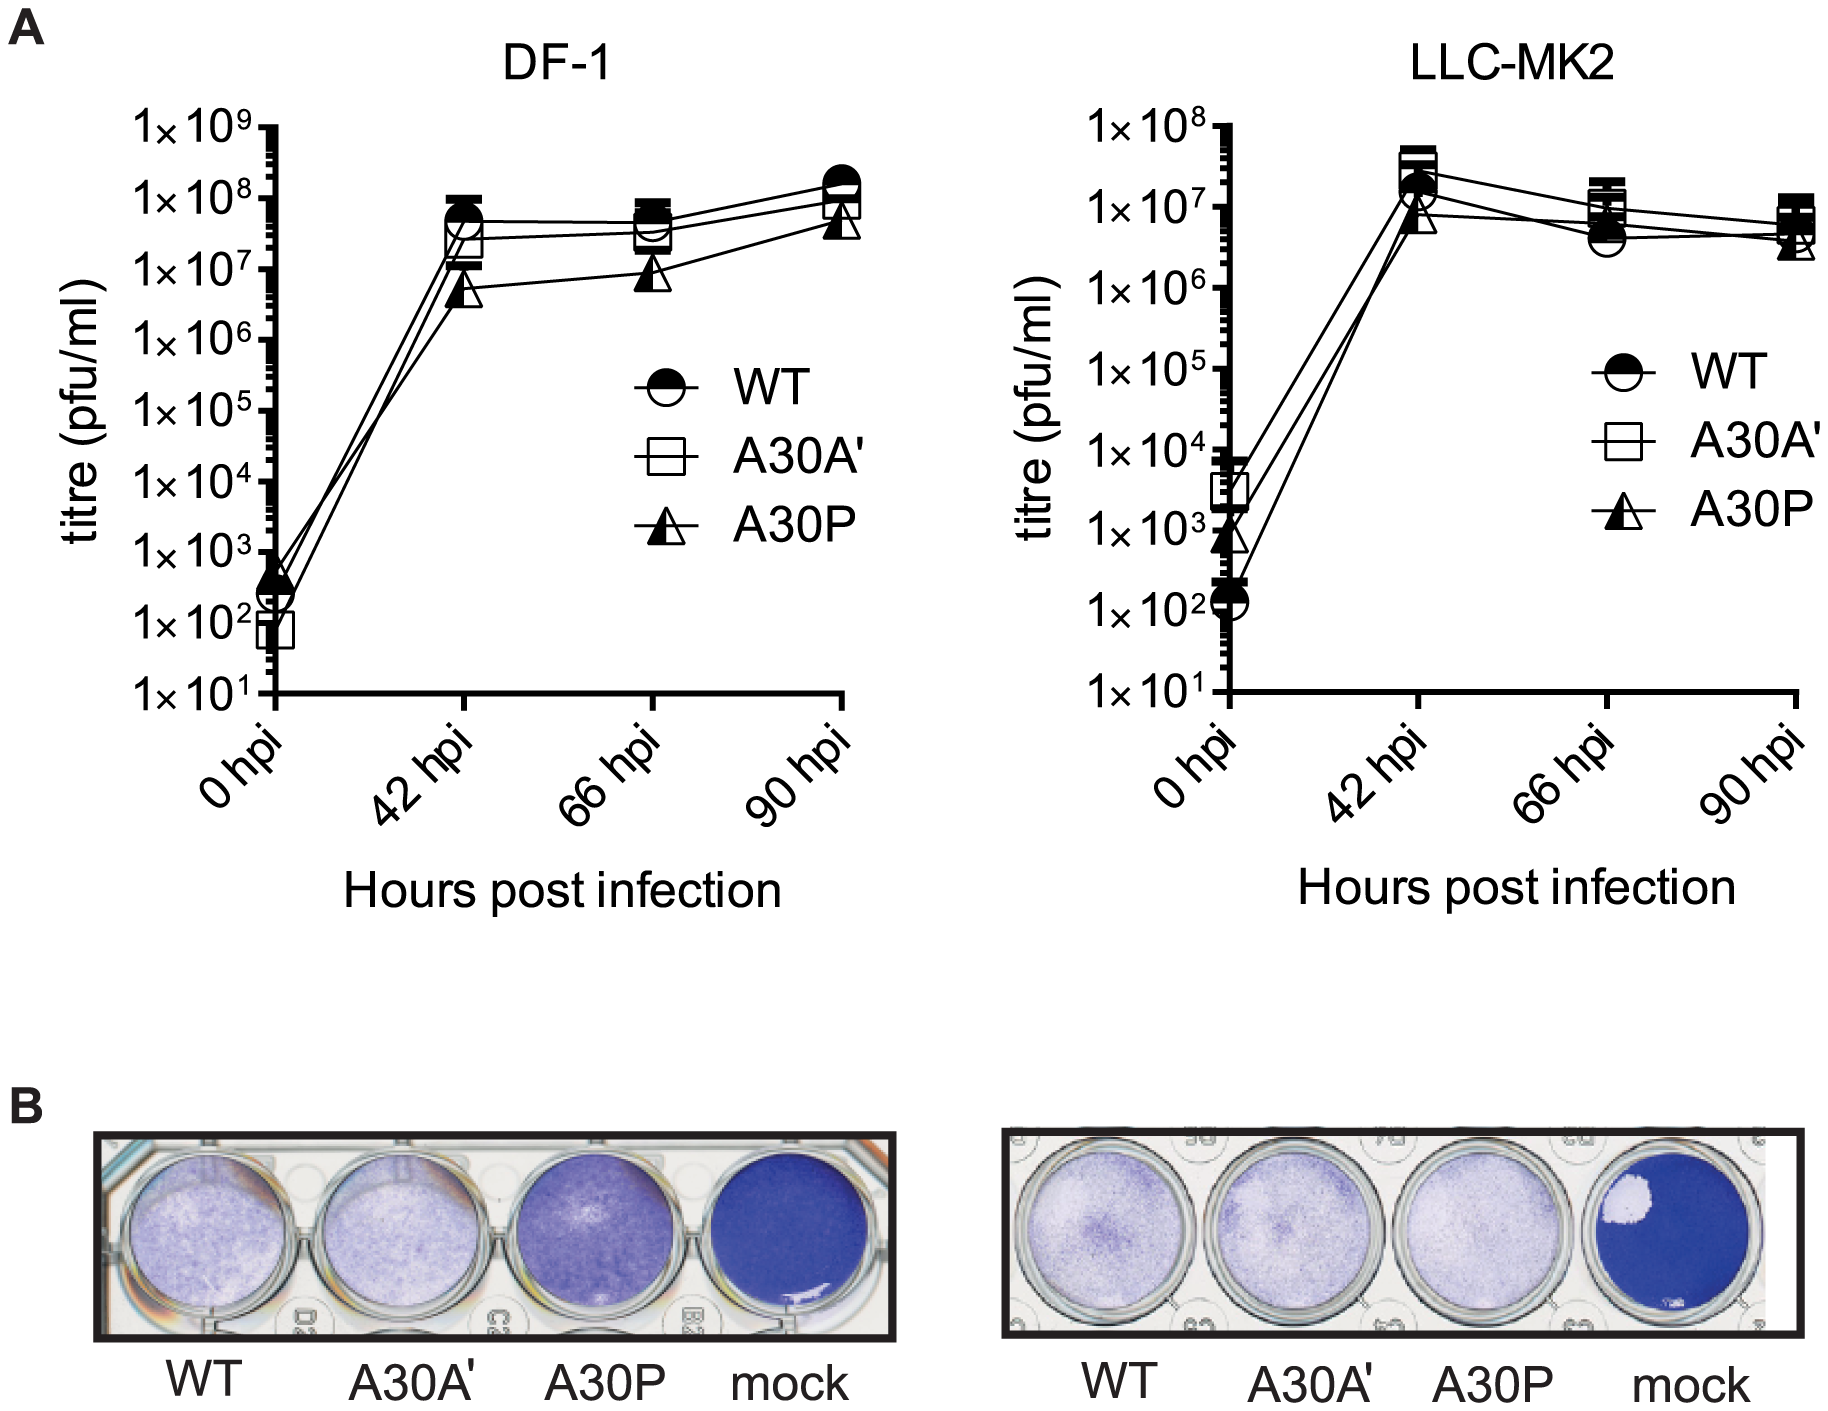 PRF does not impact viral accumulation in avian and mammalian cell lines.